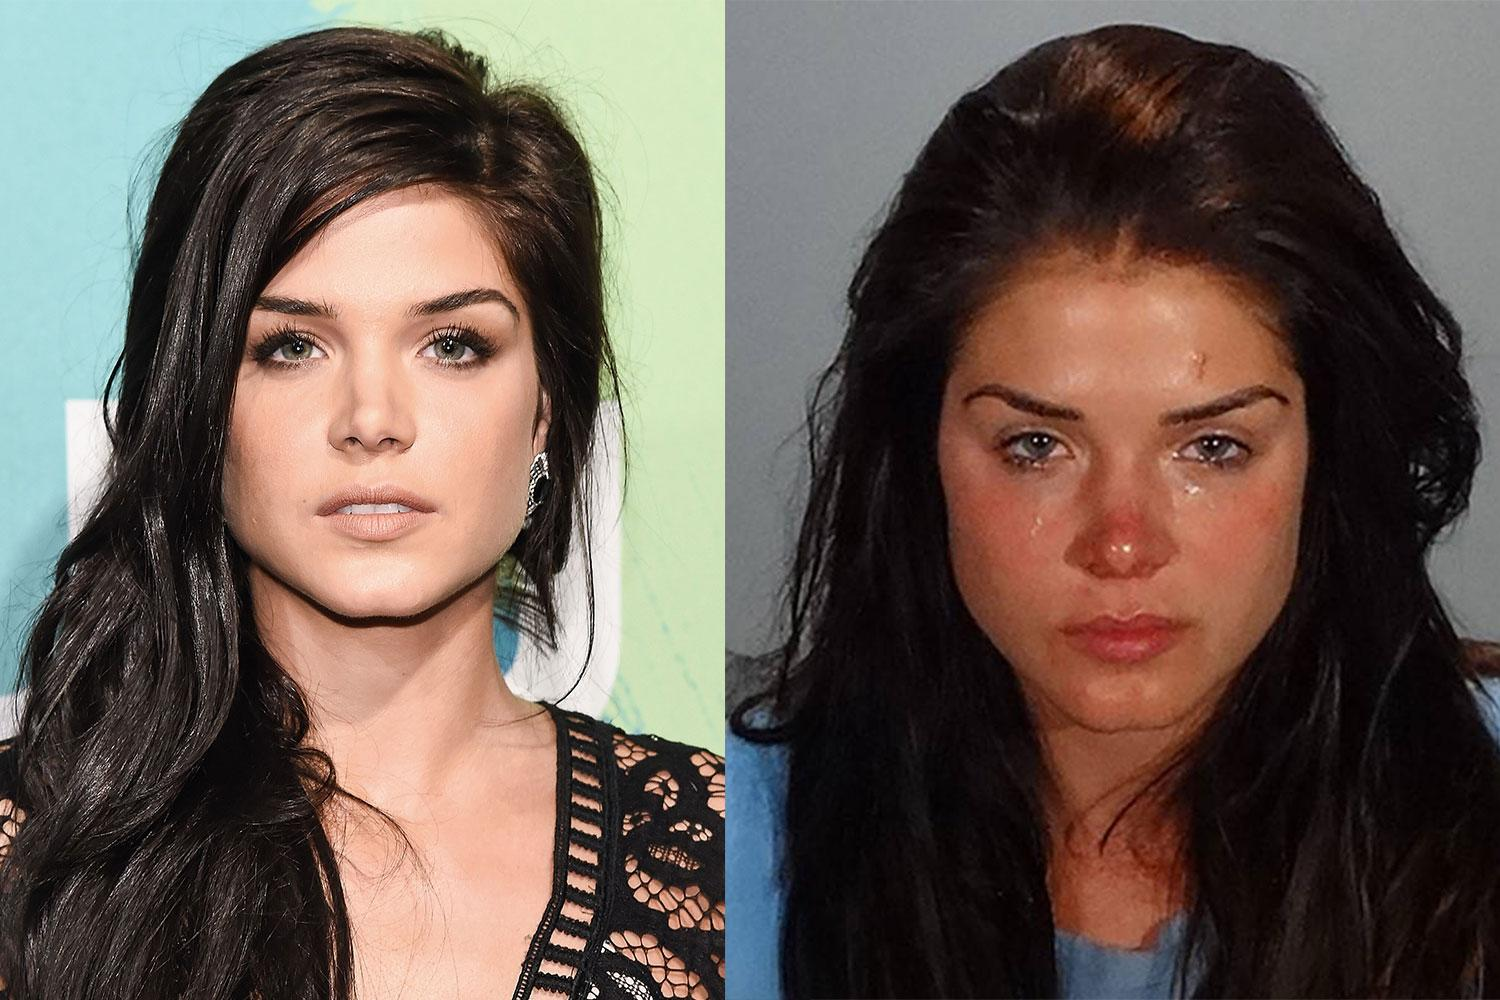 Marie Avgeropoulos arrested after fight with boyfriend